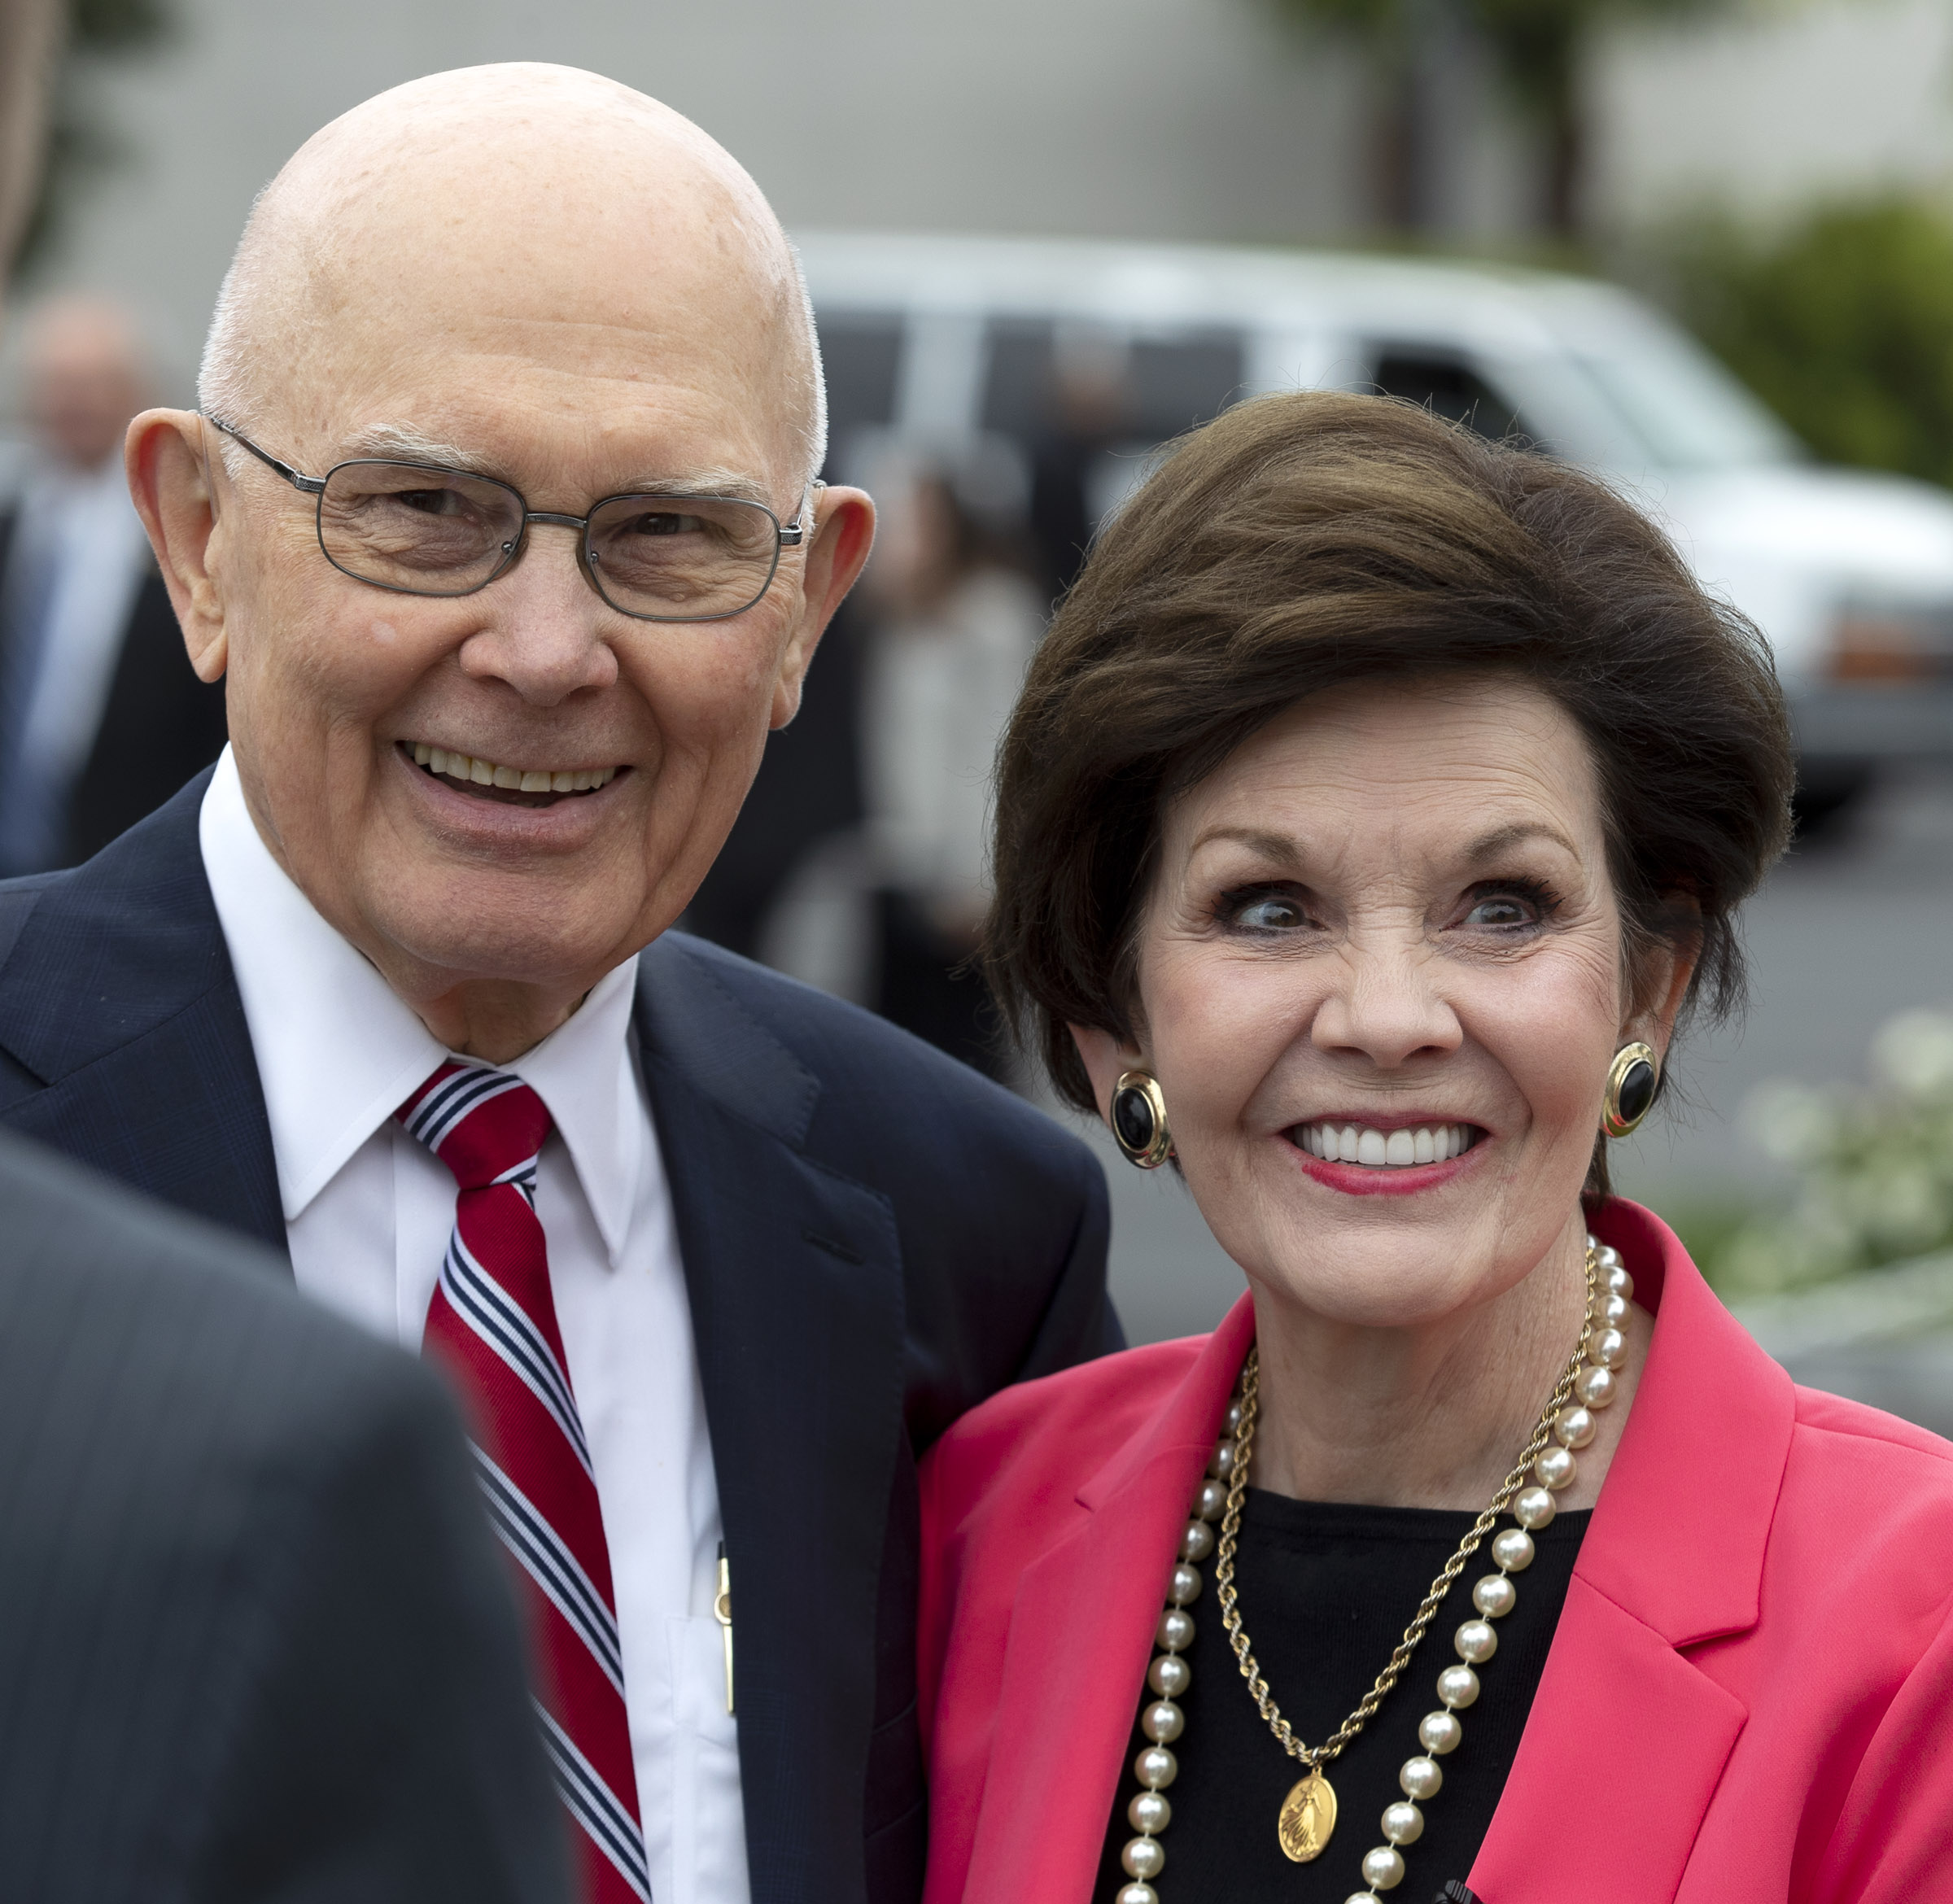 President Dallin H. Oaks, first counselor in the First Presidency, and his wife, Sister Kristen Oaks smile as they talk about the beauty of the Oakland California Temple following a walk-through on Saturday, June 15, 2019.